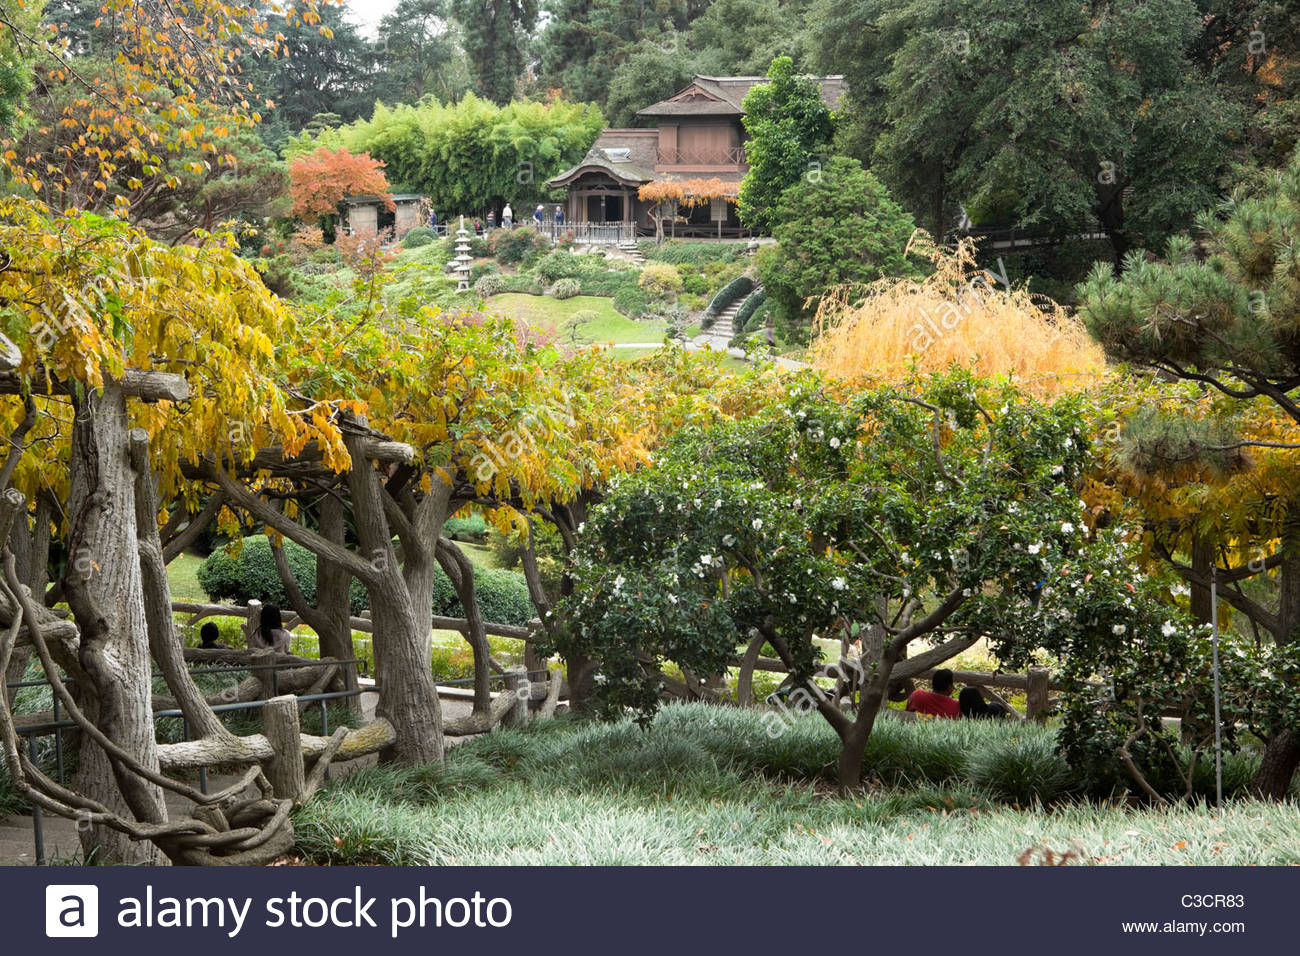 Japanese Garden At The Huntington Botanical Gardens San Marino